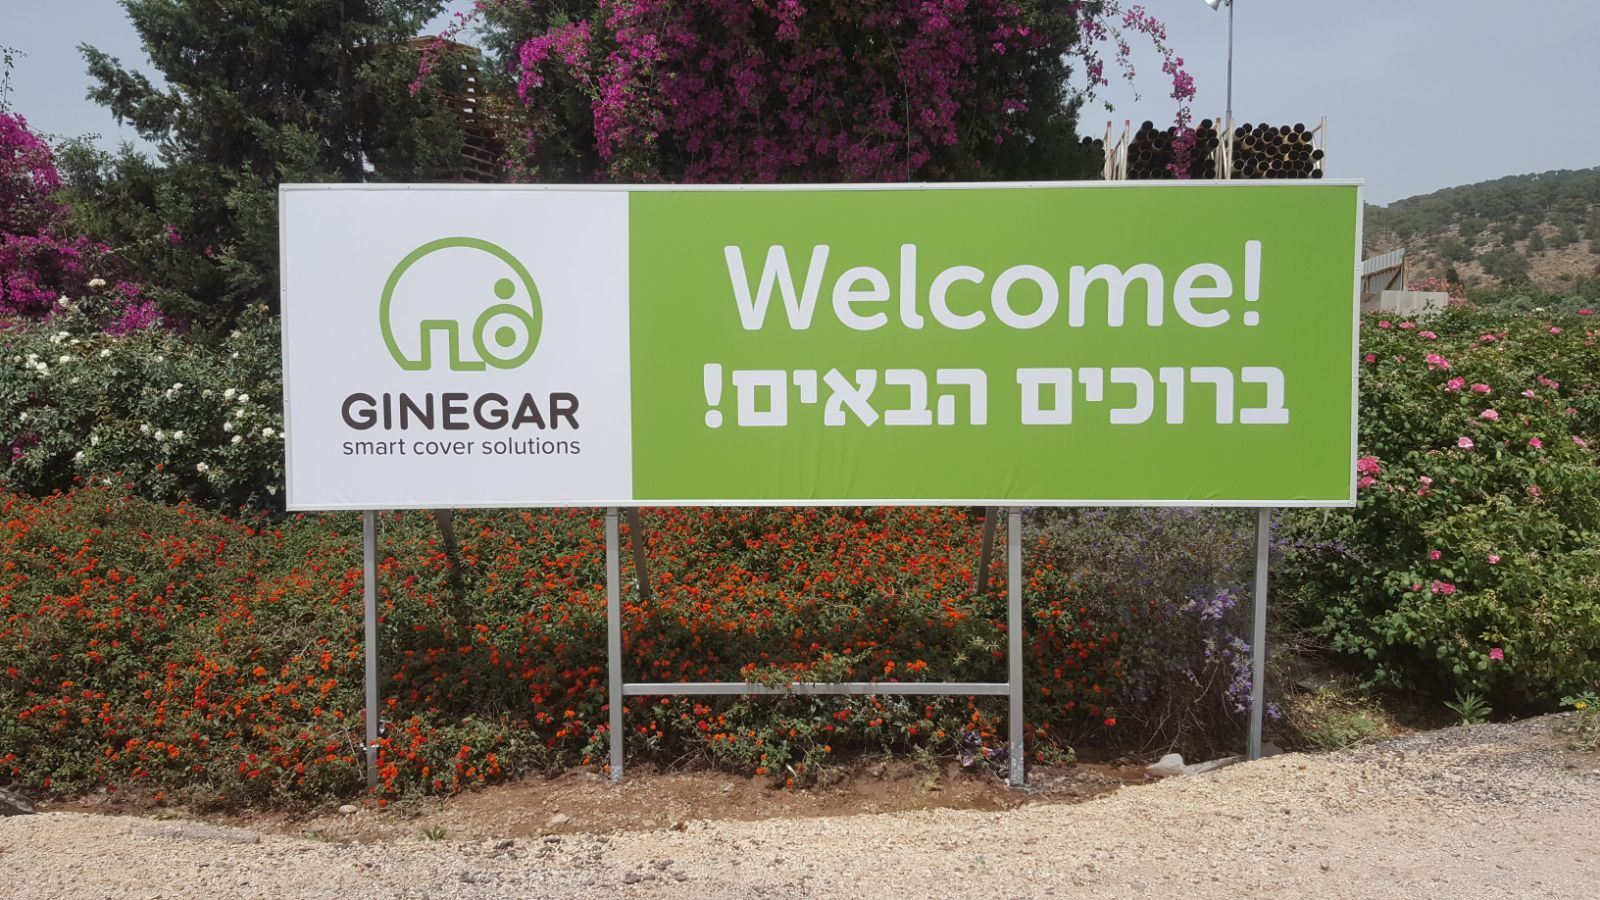 https://www.afiksigns.co.il/Uploads/ראשי/שלט הכוונה ginegar.jpg